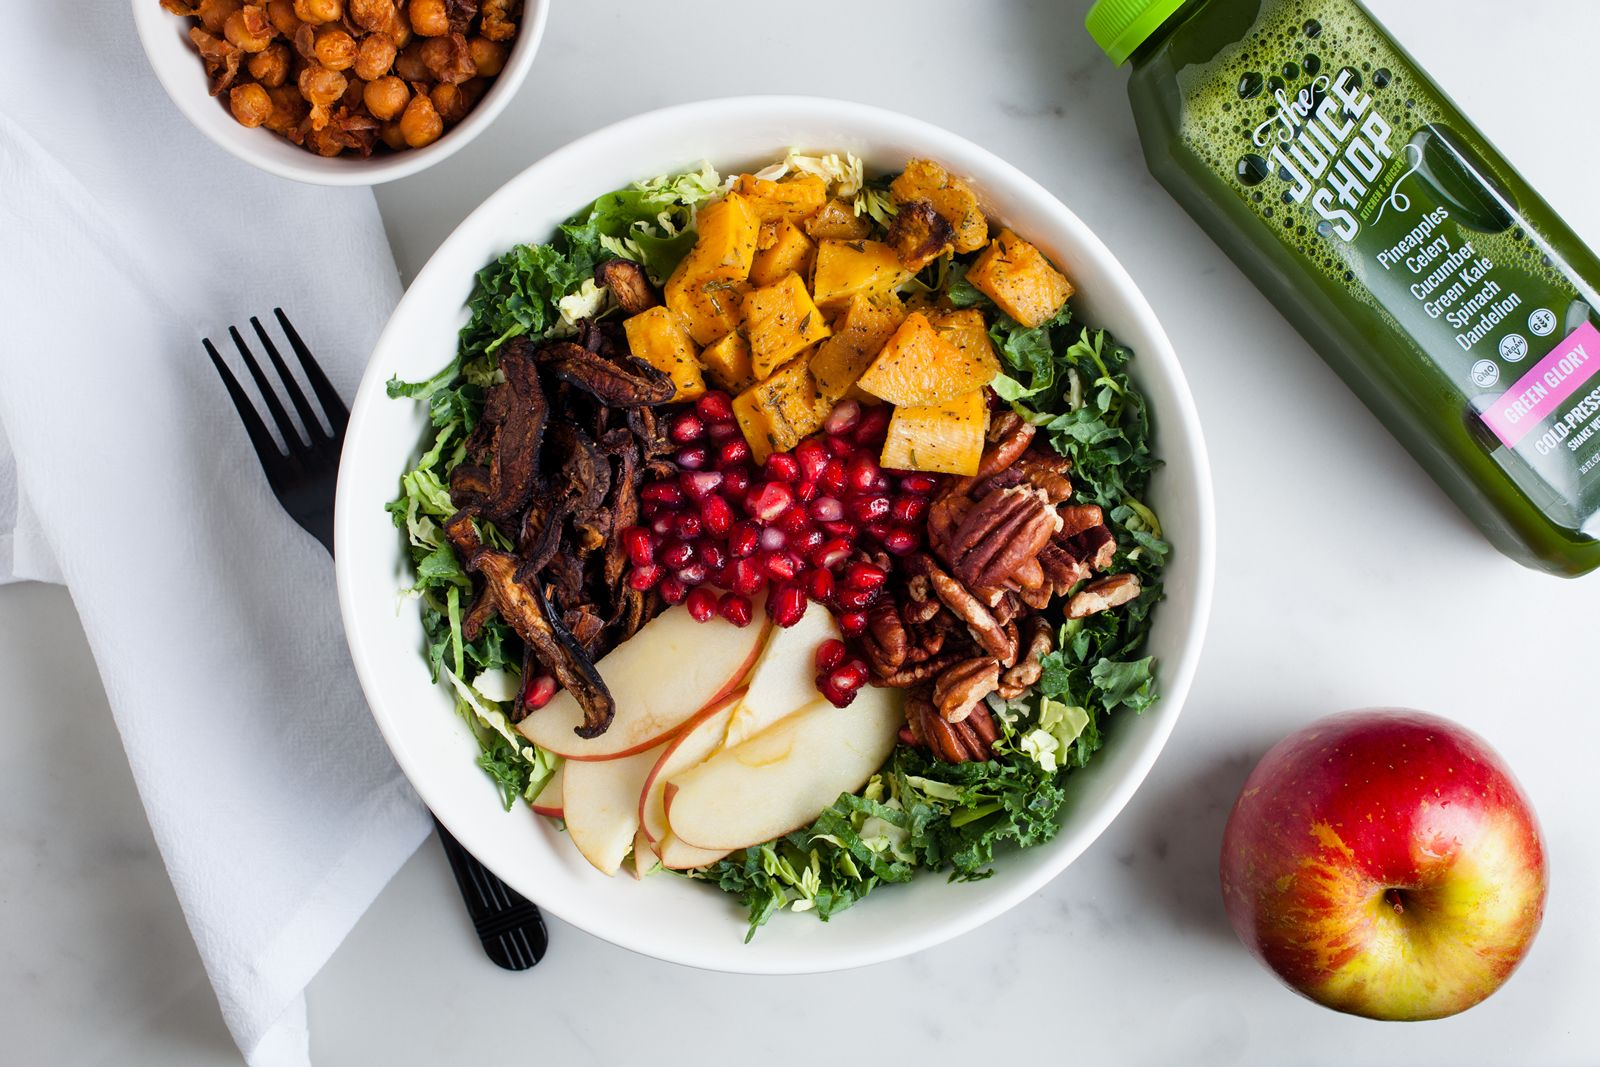 The Juice Shop Kitchen & Juicery, an innovative fast casual concept offering juices, acai bowls, salads, sweet and savory toasts, and more, has recently signed with global franchising company, Fransmart, to expand the New York-based concept into major media markets nationwide.